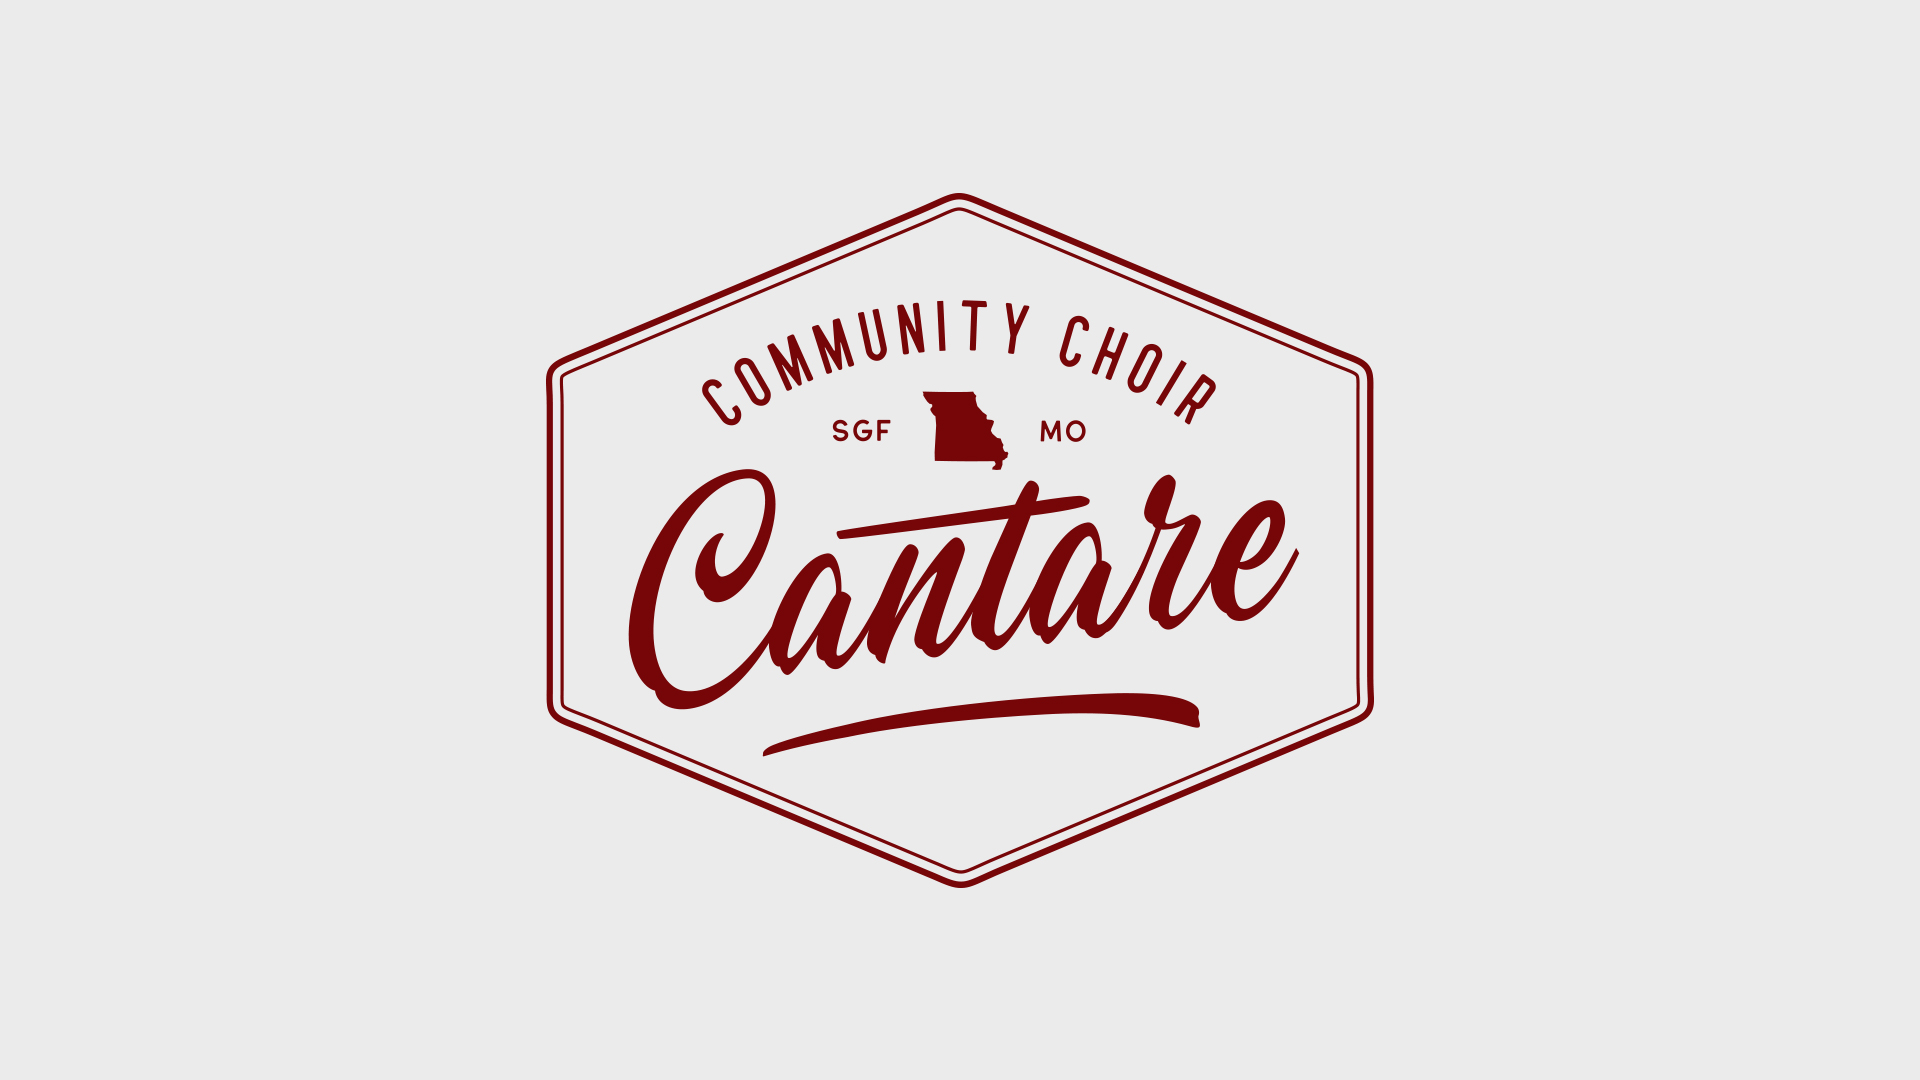 Cantare Community Choir - Cantare is a non-auditioned choir with a common passion for inspiring others and sharing the joy of choral music with our community! We meet on Tuesdays from 6:30-8pm.